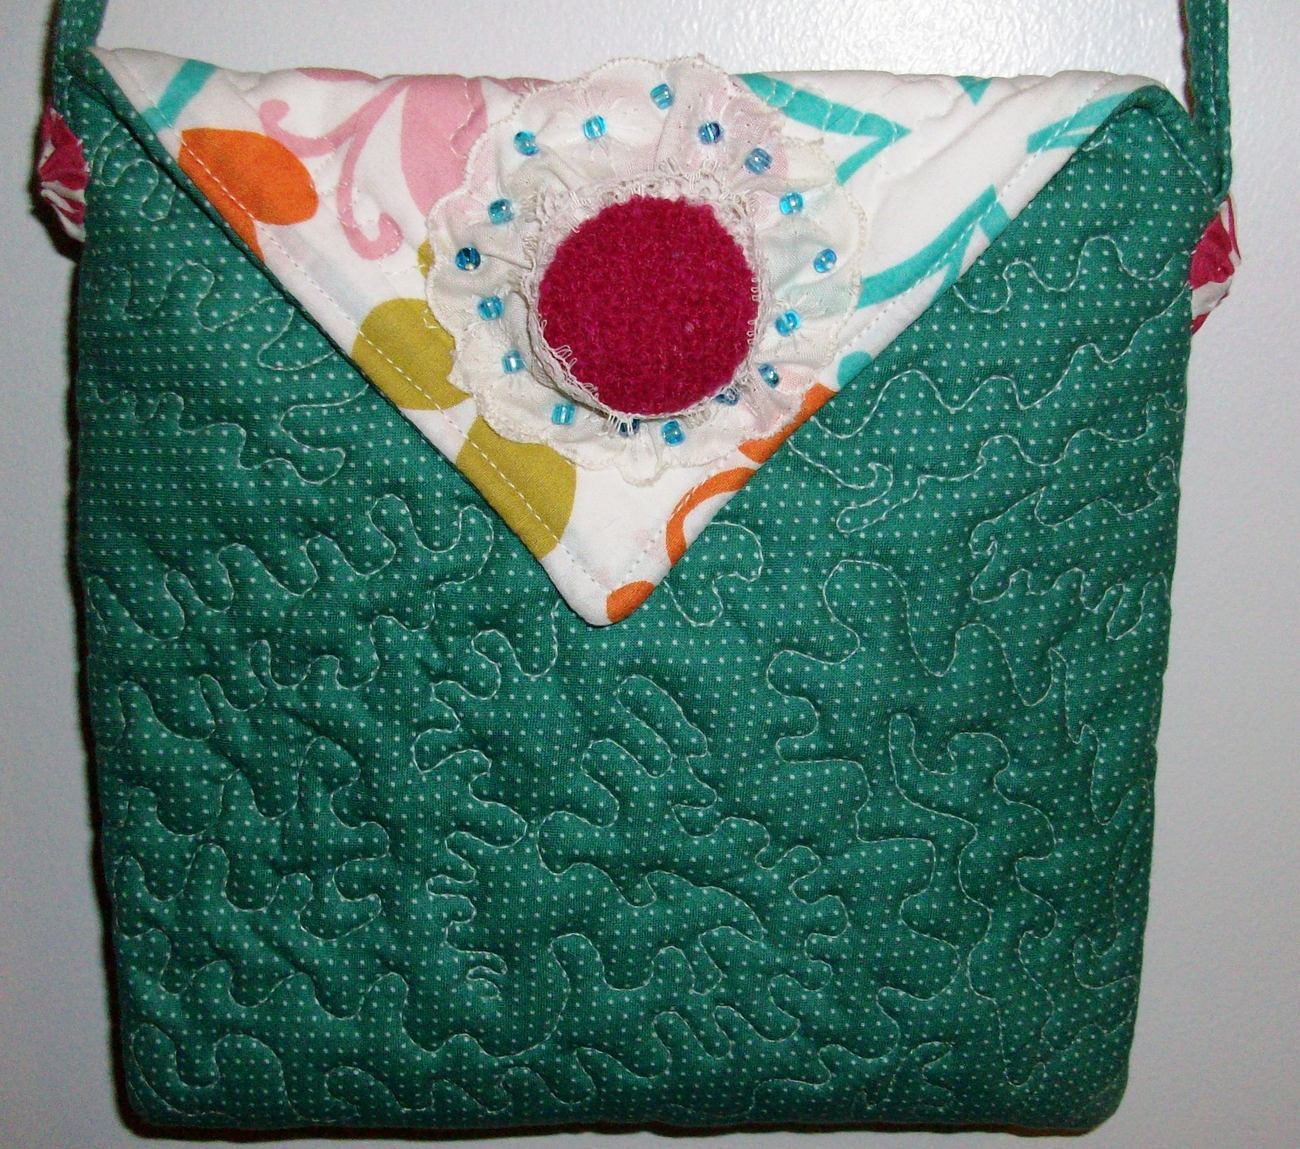 Handmade  Quilted Purse Handbag Original Design by Pursephoric Brand